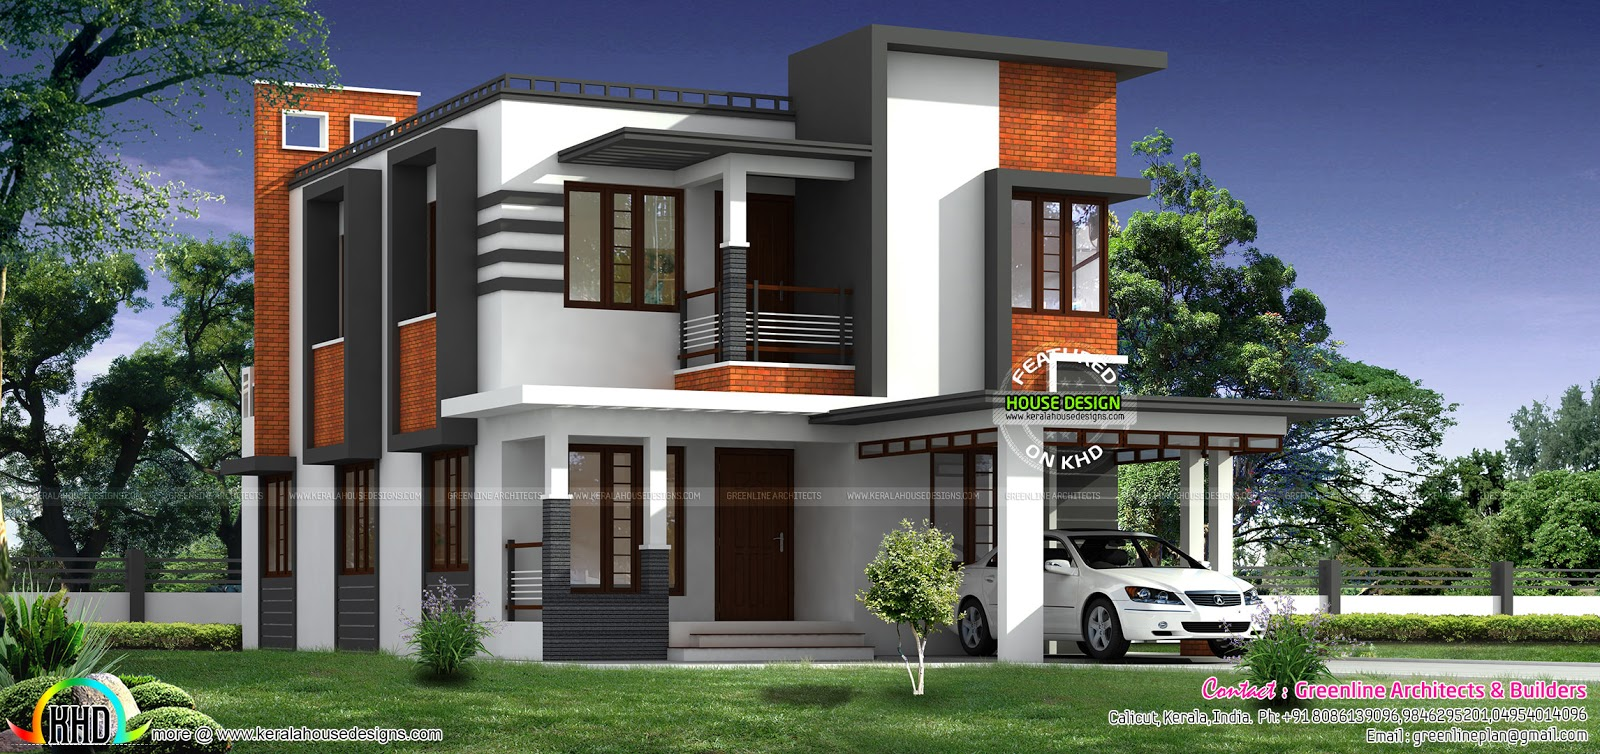 1800 sq ft nice modern house kerala home design and floor plans - Nice house designs ...